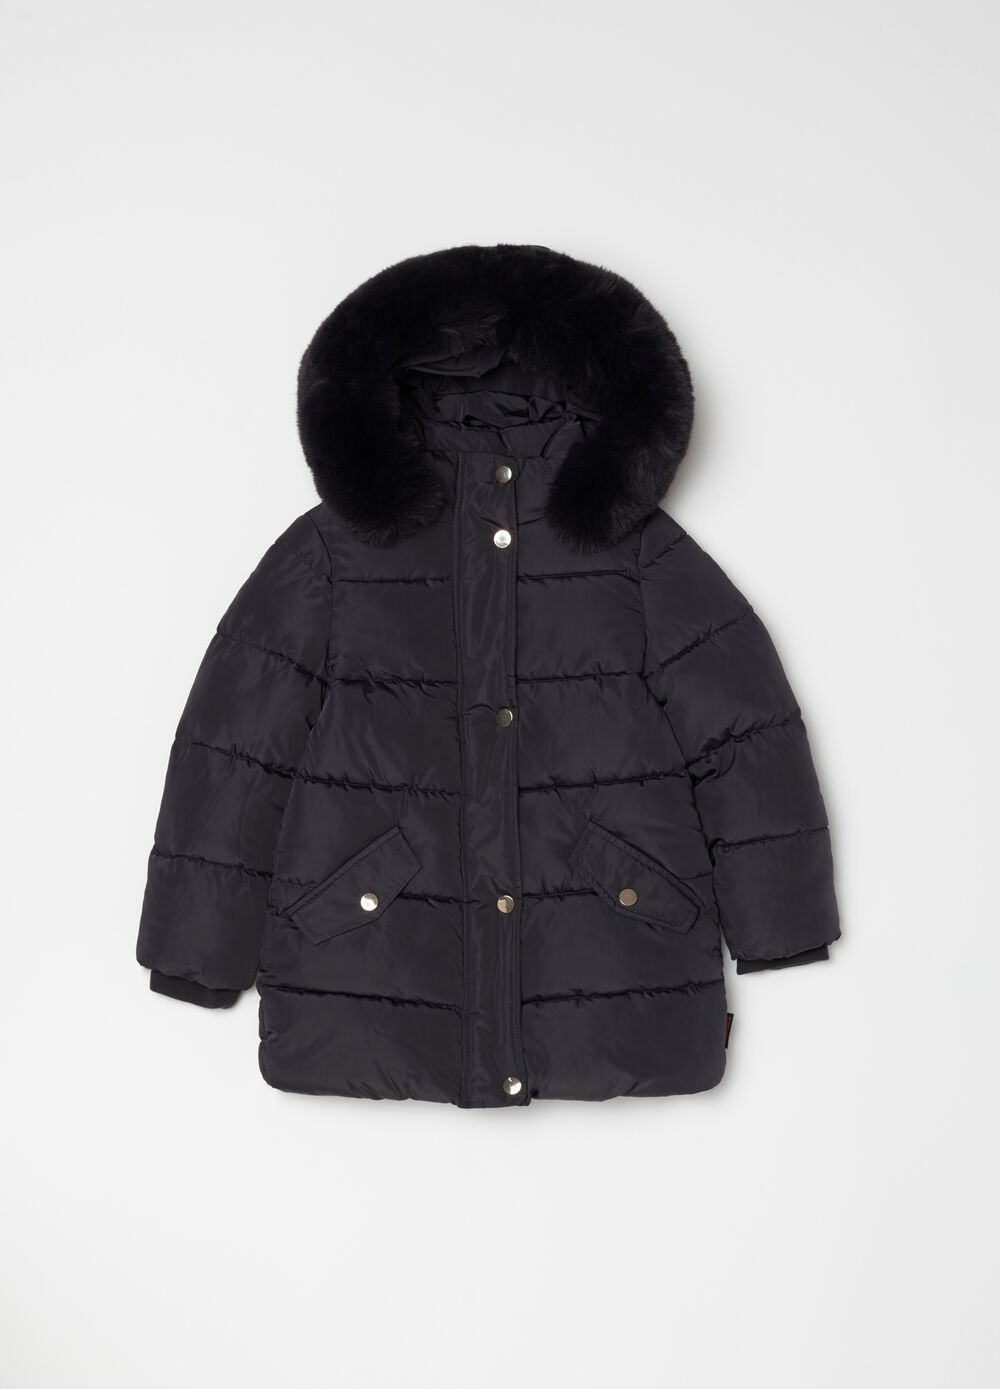 Quilted jacket with hood and pockets